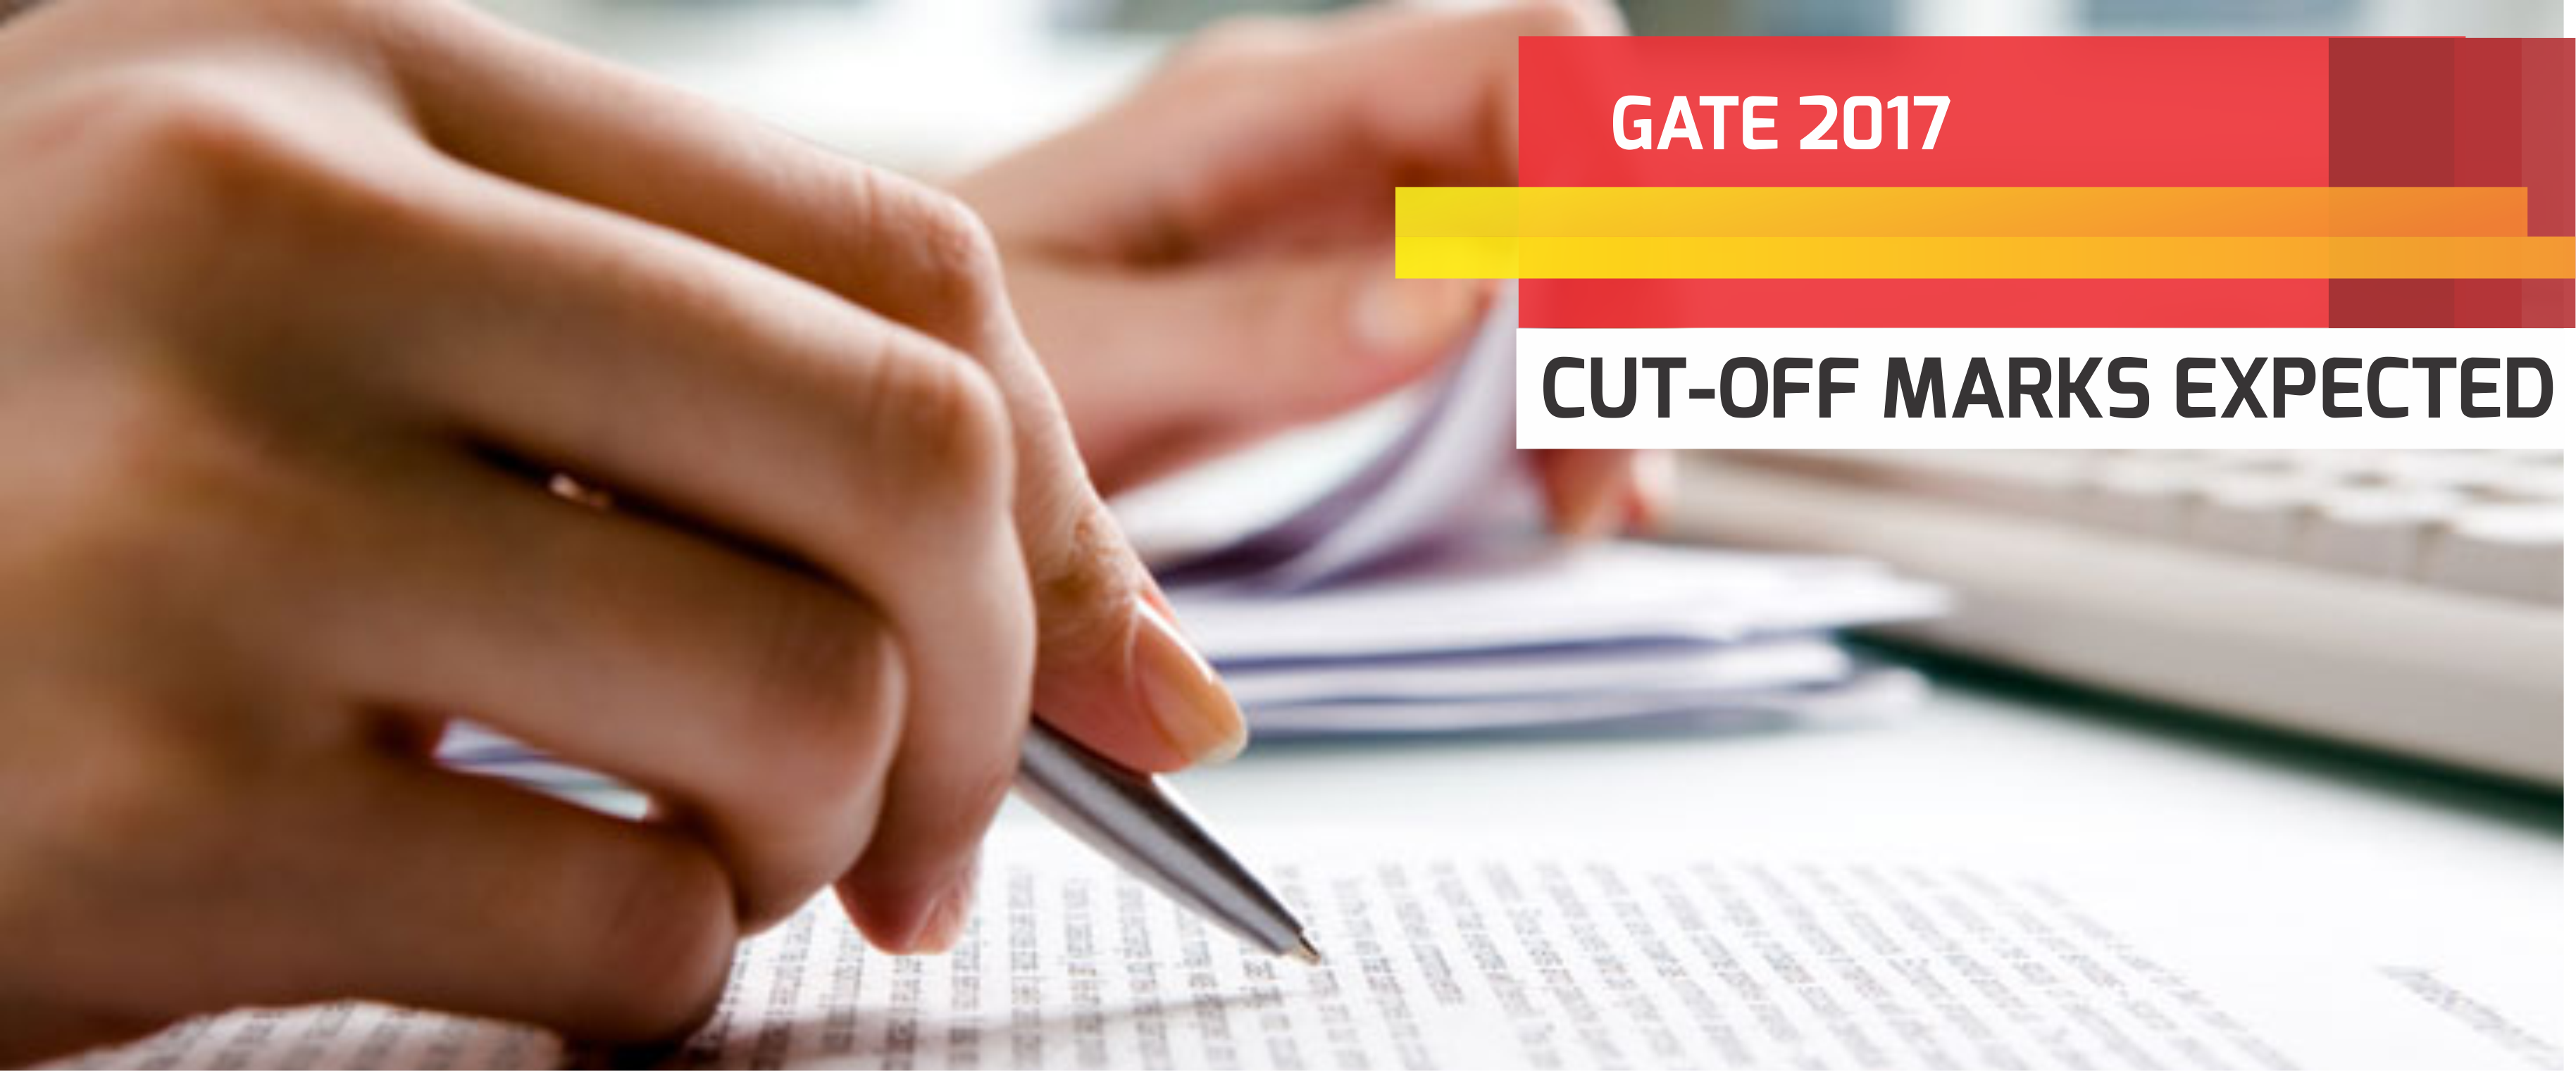 GATE 2017 Cut-Off Marks (Expected)